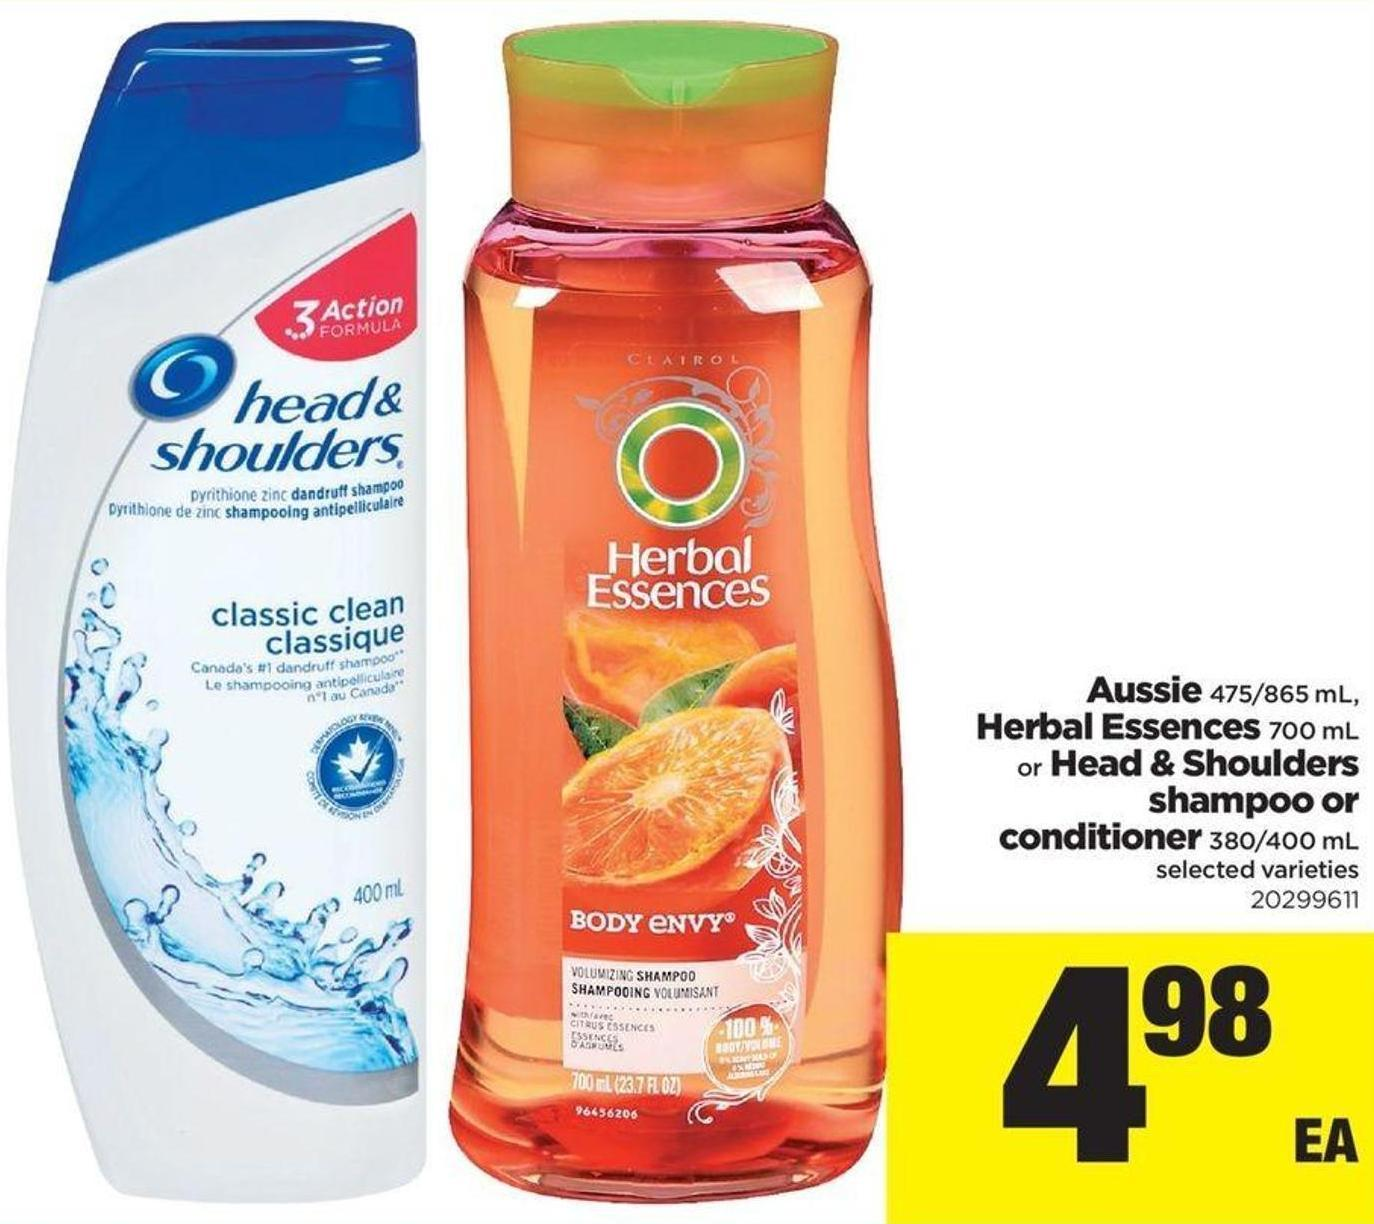 Aussie - 475/865 Ml - Herbal Essences - 700 Ml or Head & Shoulders Shampoo or Conditioner - 380/400 Ml